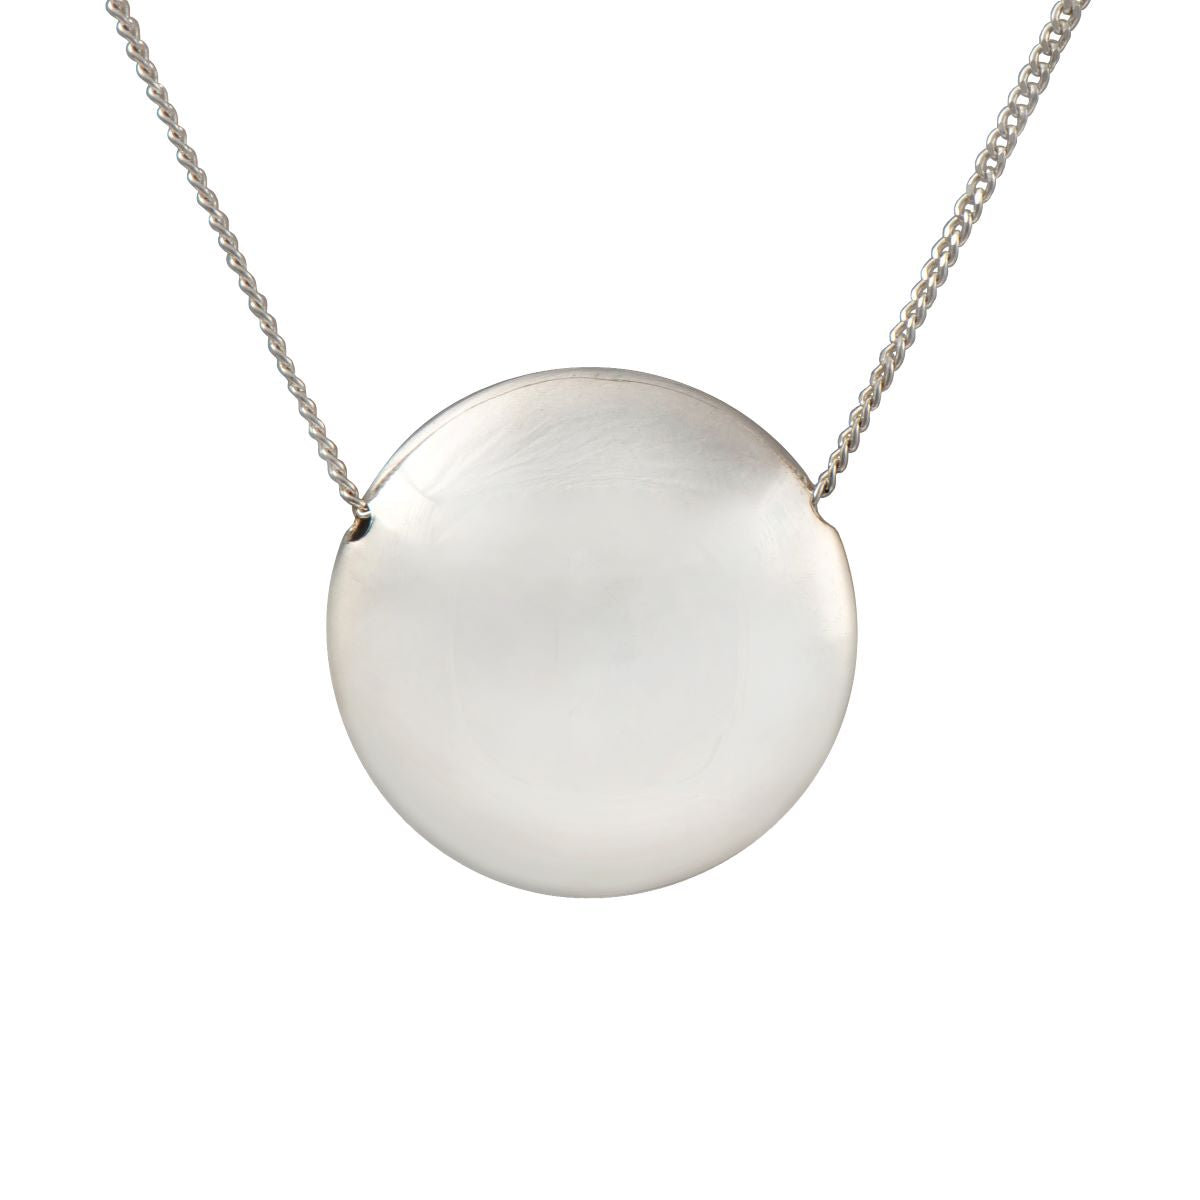 Sterling Silver Necklace with Big Hollow Disc Pendant